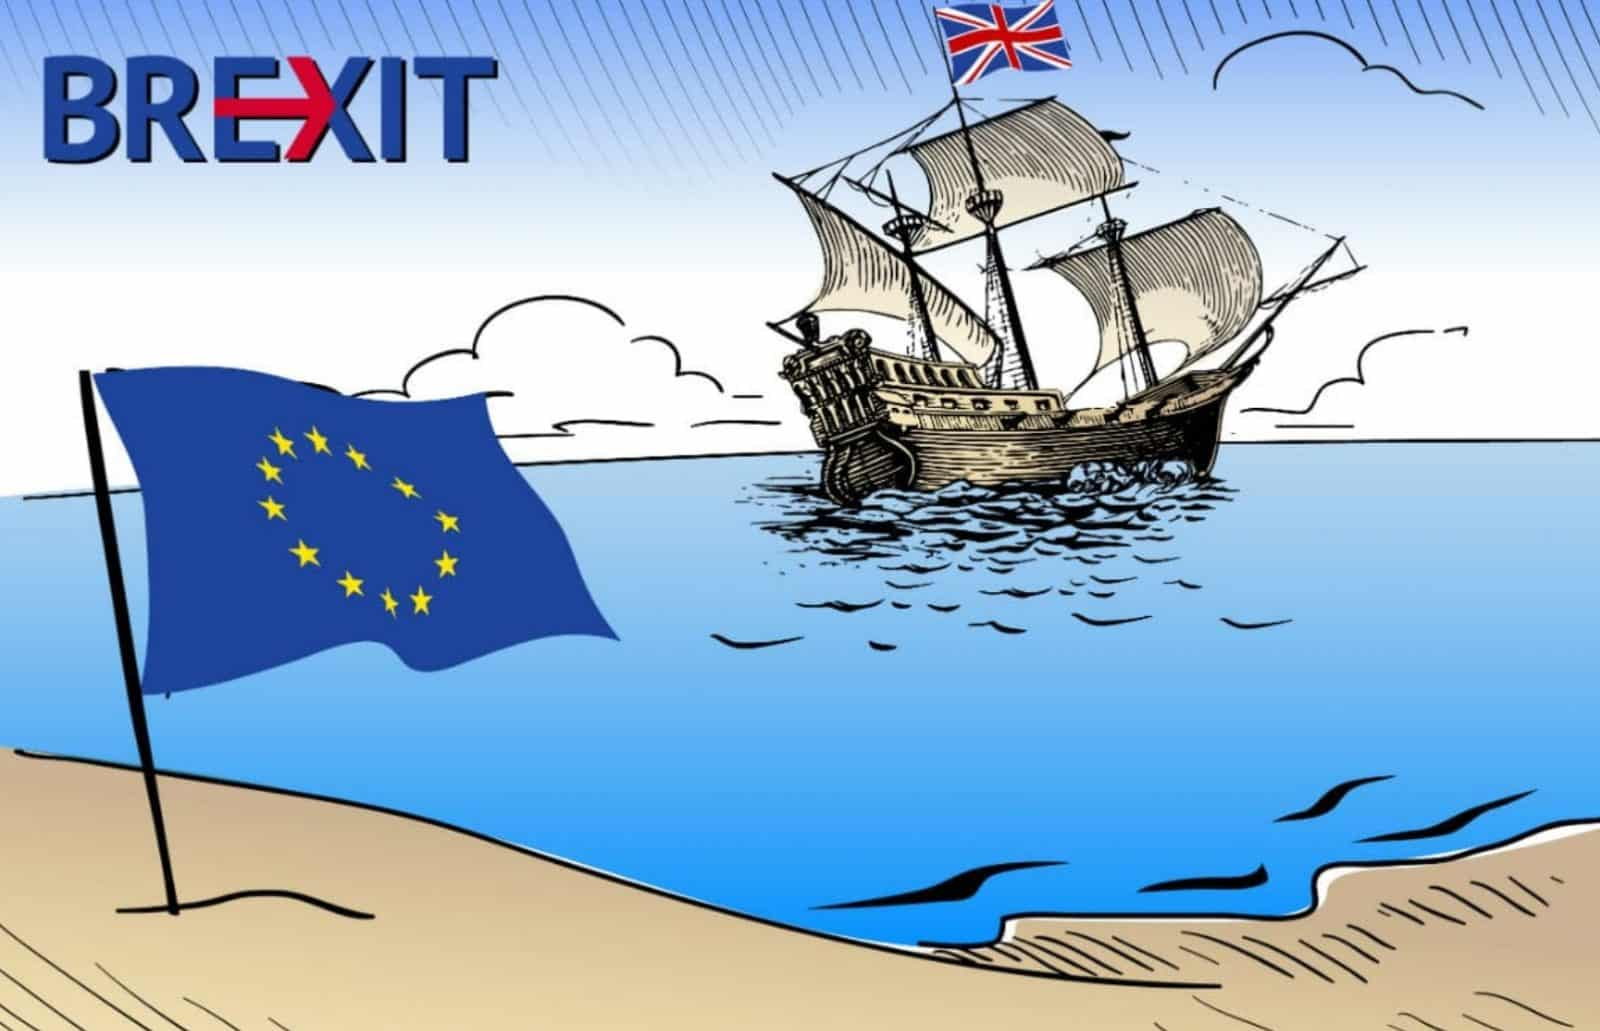 Brexit and its fallout effects